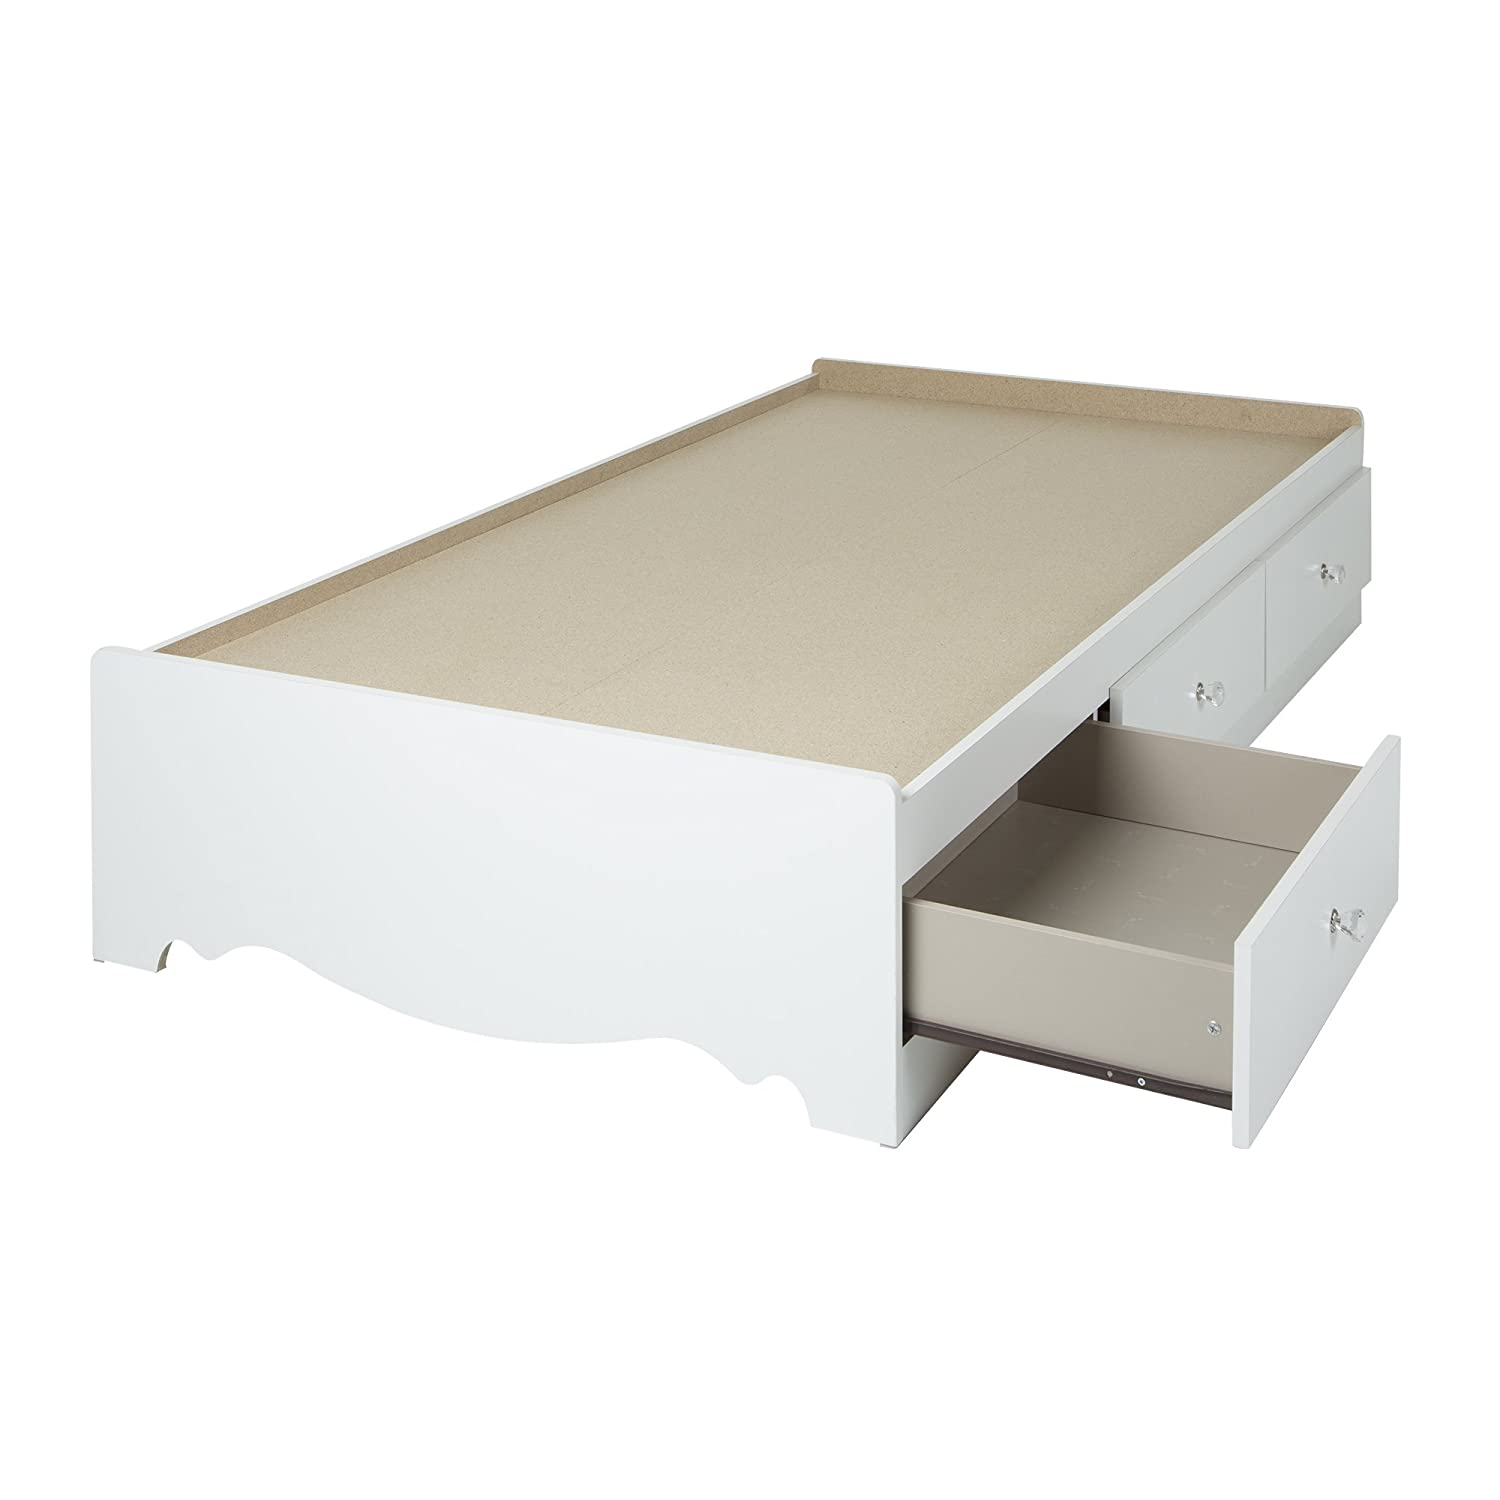 Amazon.com South Shore Crystal Collection Twin Storage Bed Pure White Kitchen u0026 Dining  sc 1 st  Amazon.com & Amazon.com: South Shore Crystal Collection Twin Storage Bed Pure ...